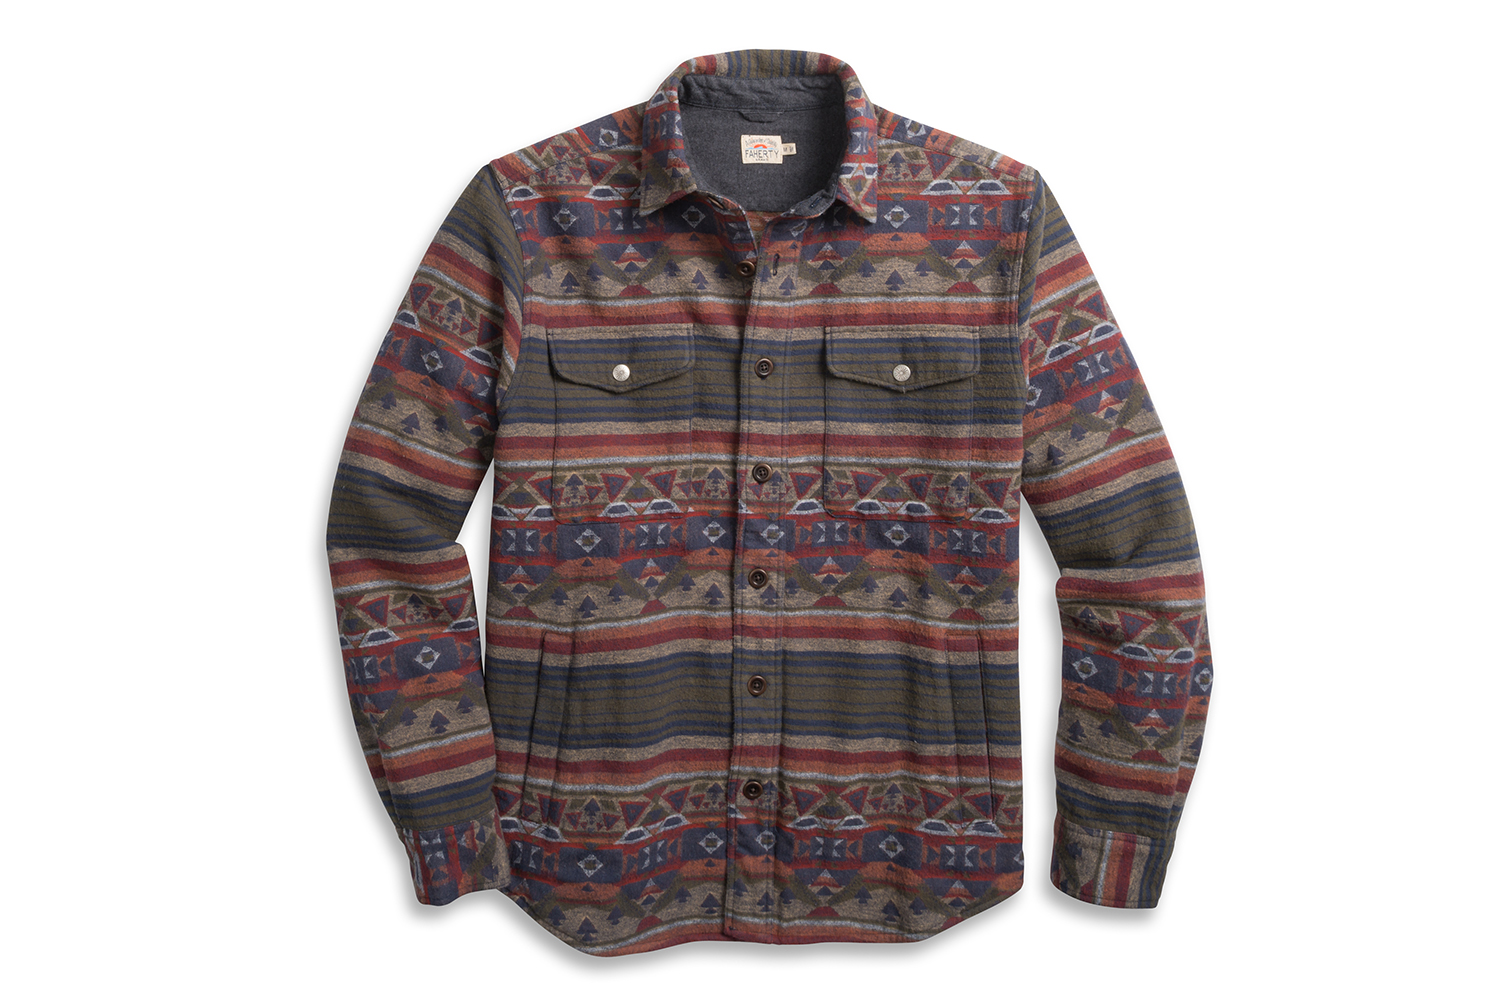 Faherty Brand Reversible Bondi Jacket Shirt Jacket